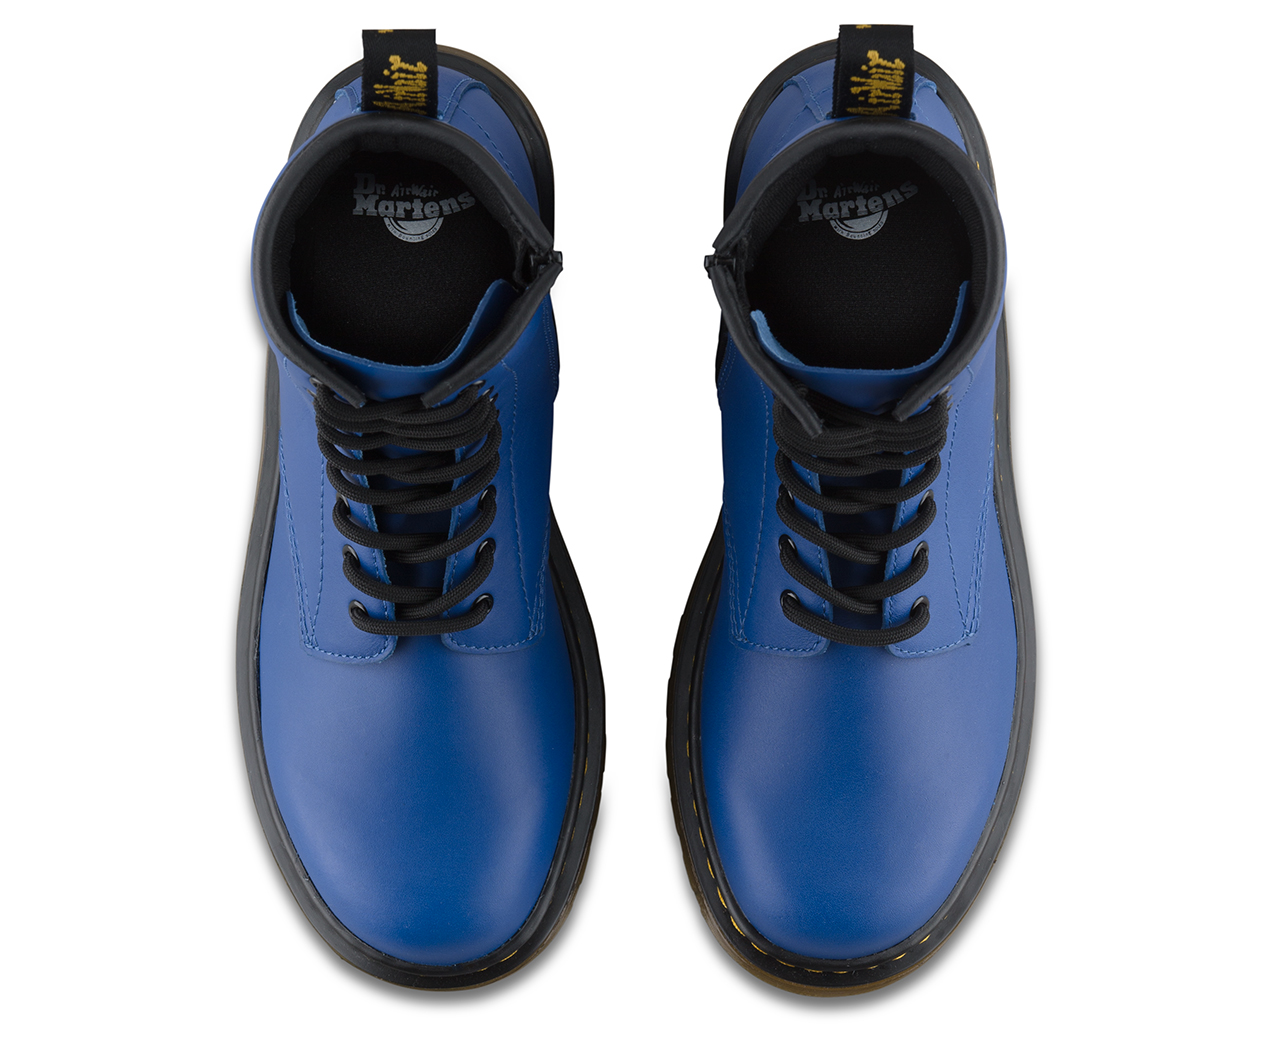 56ad636851637 YOUTH 1460 ROMARIO | Kids | Dr. Martens Official